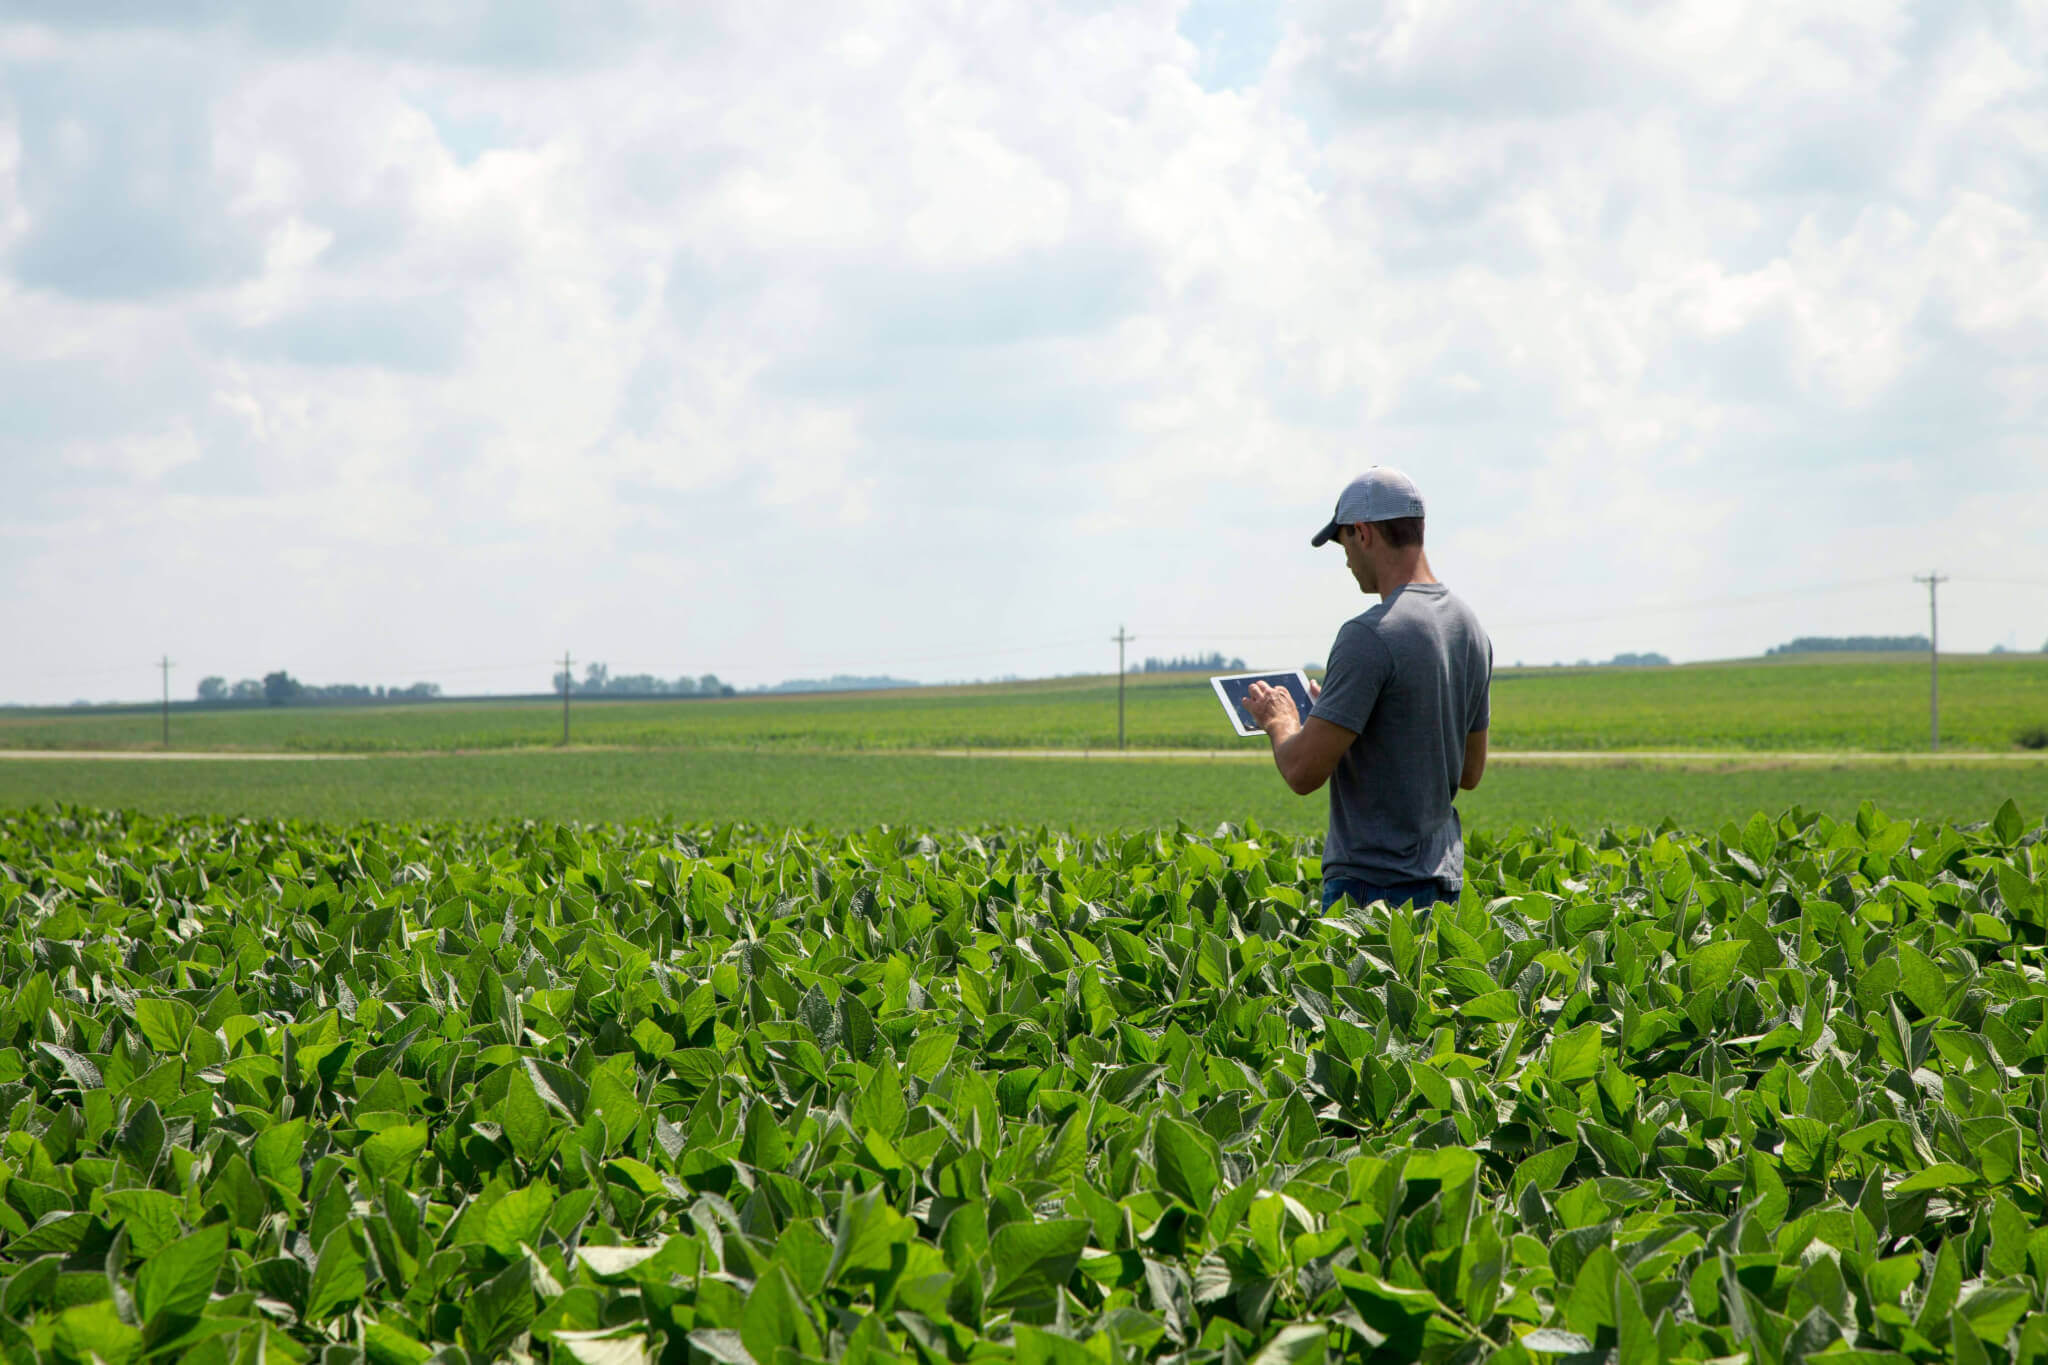 Ag Leader Expands Full-Farm Data Solution by Connecting Operations Running Mixed Fleets